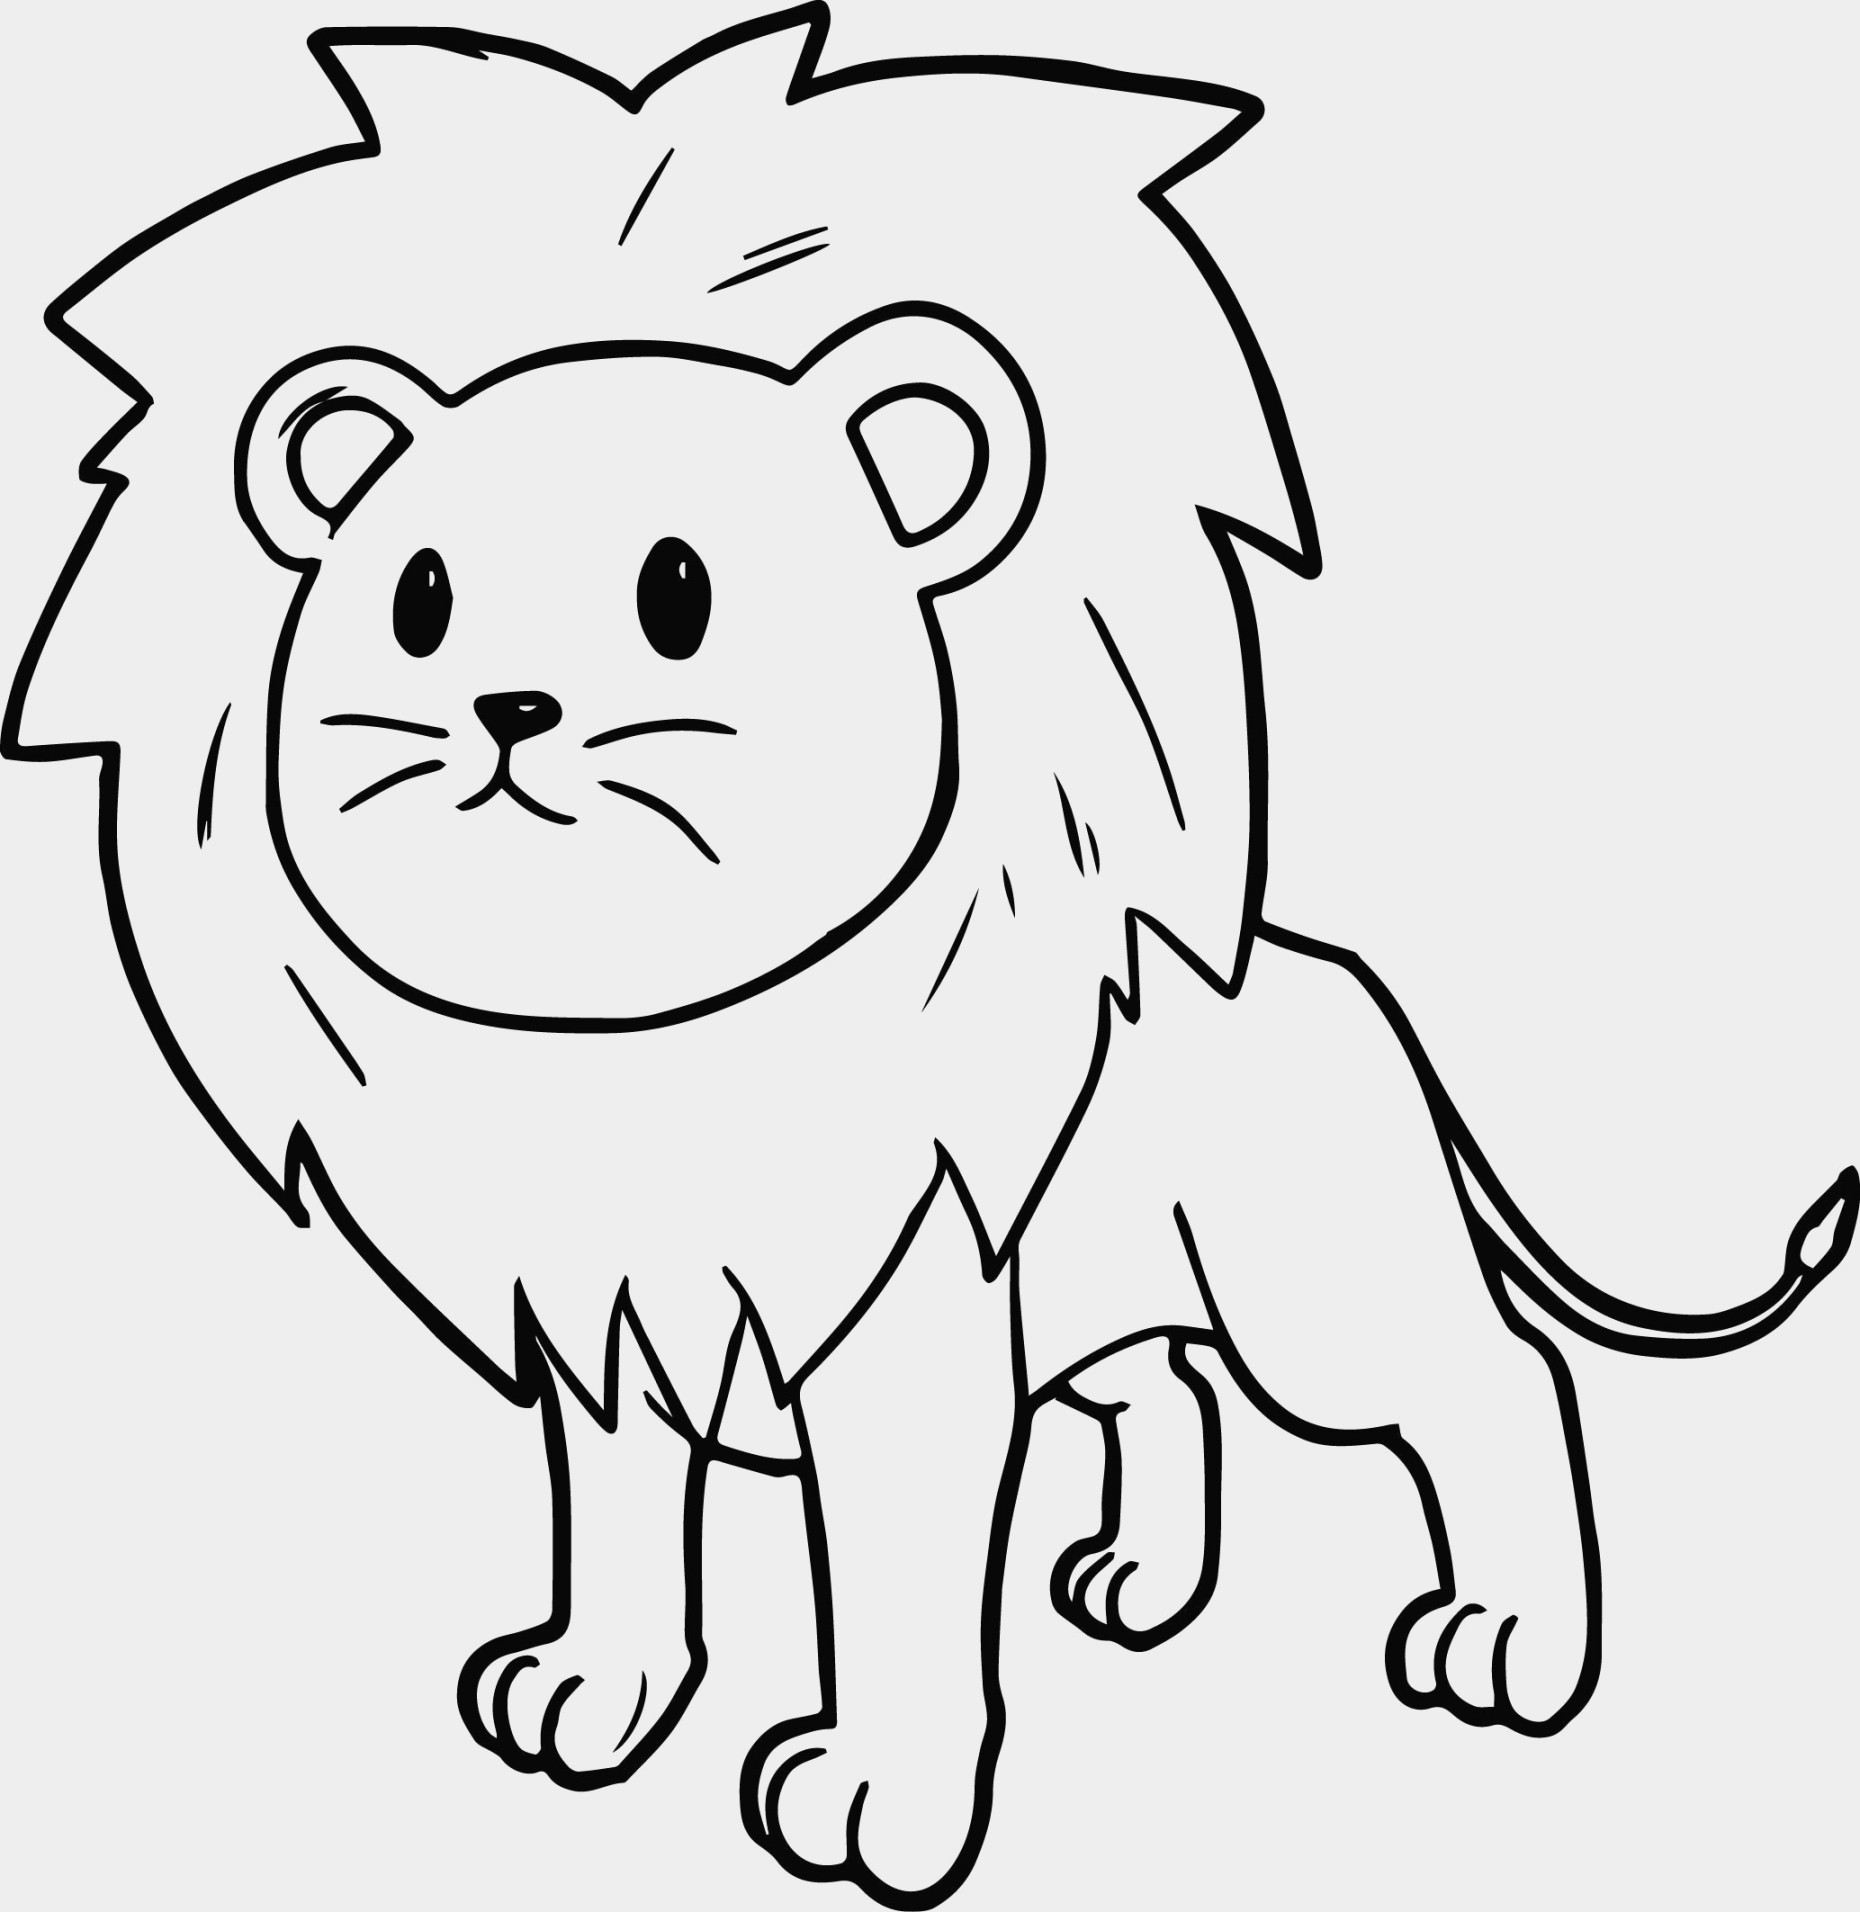 1860x1912 Lion Coloring Pages Awesome Cartoon Ribsvigyapan Free Coloring